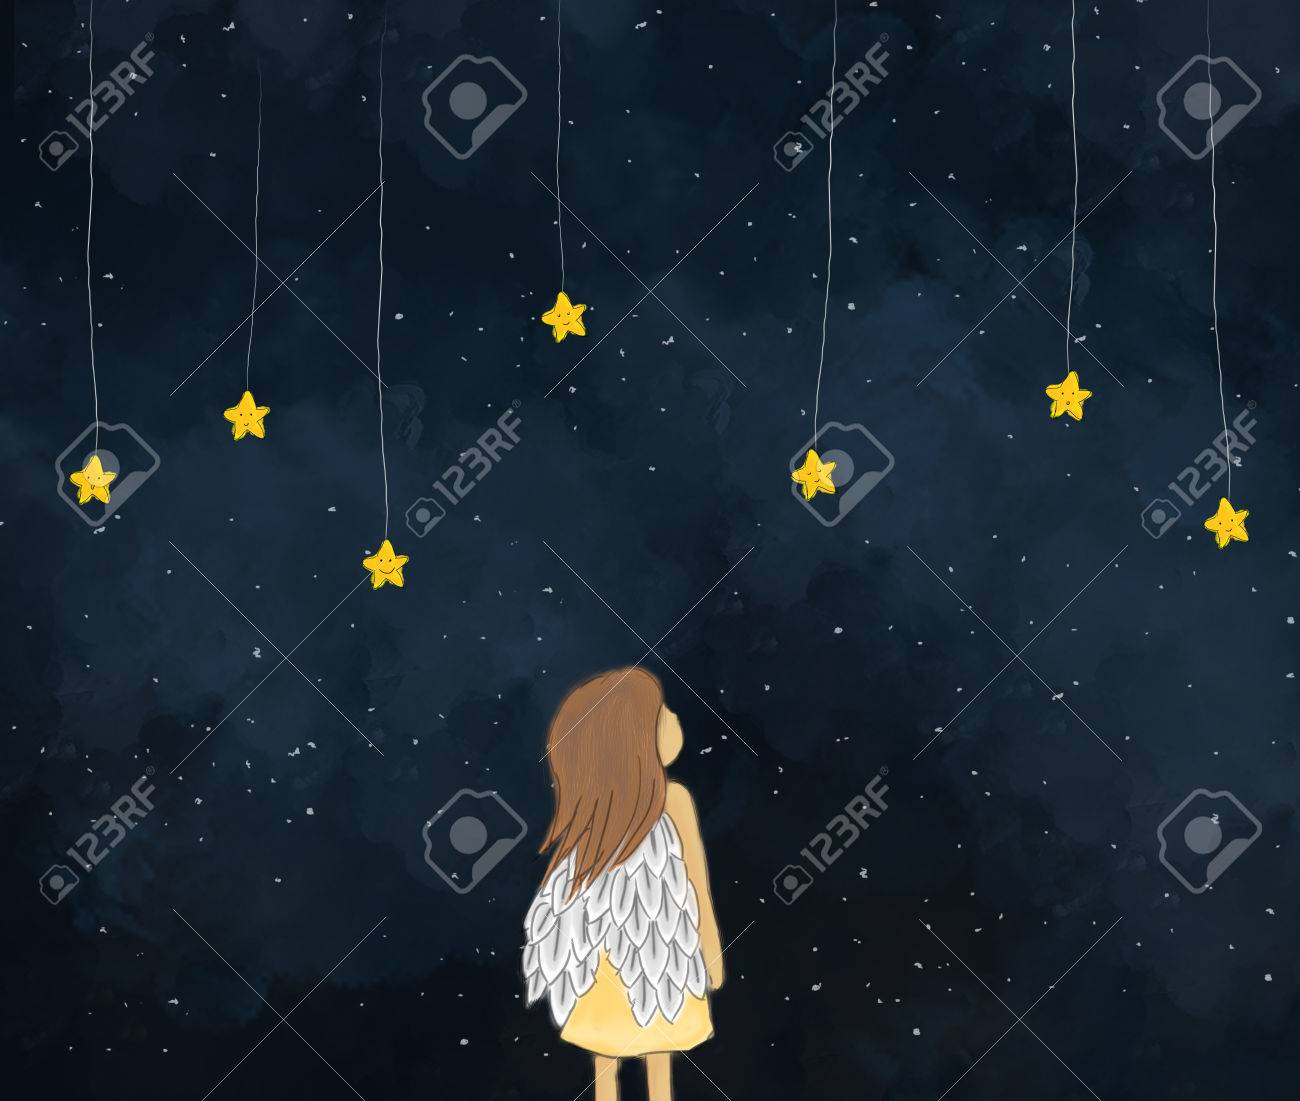 Cool Wallpaper Night Cute - 85777160-illustration-drawing-of-a-little-girl-angel-looking-at-yellow-stars-hanging-in-starry-night-cute-fac  You Should Have.jpg